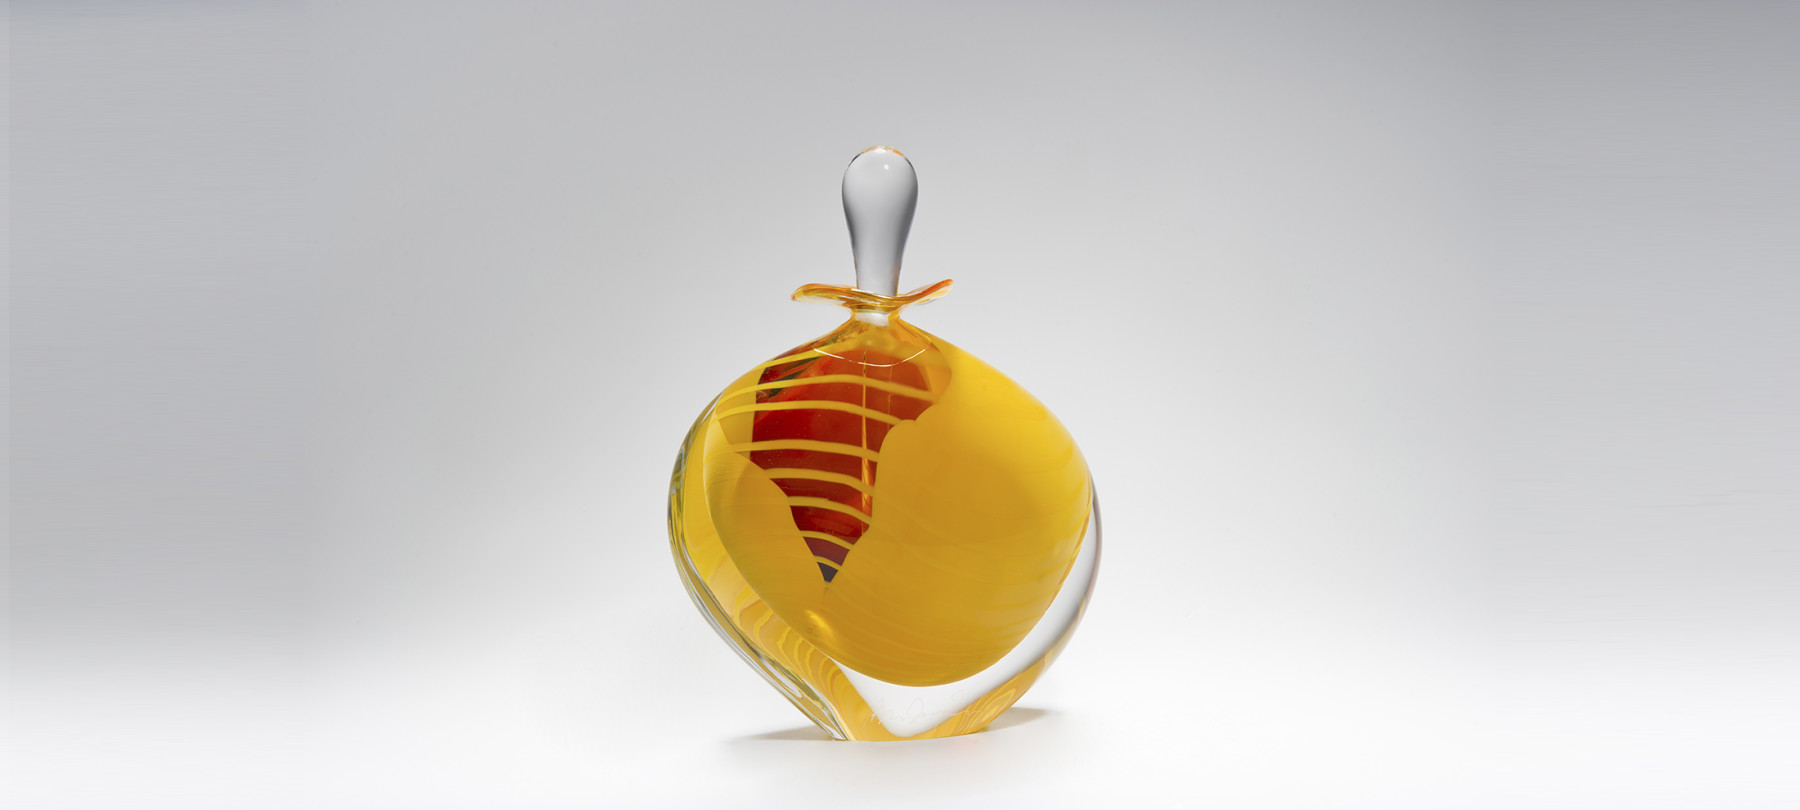 Saffron Scent Bottle New